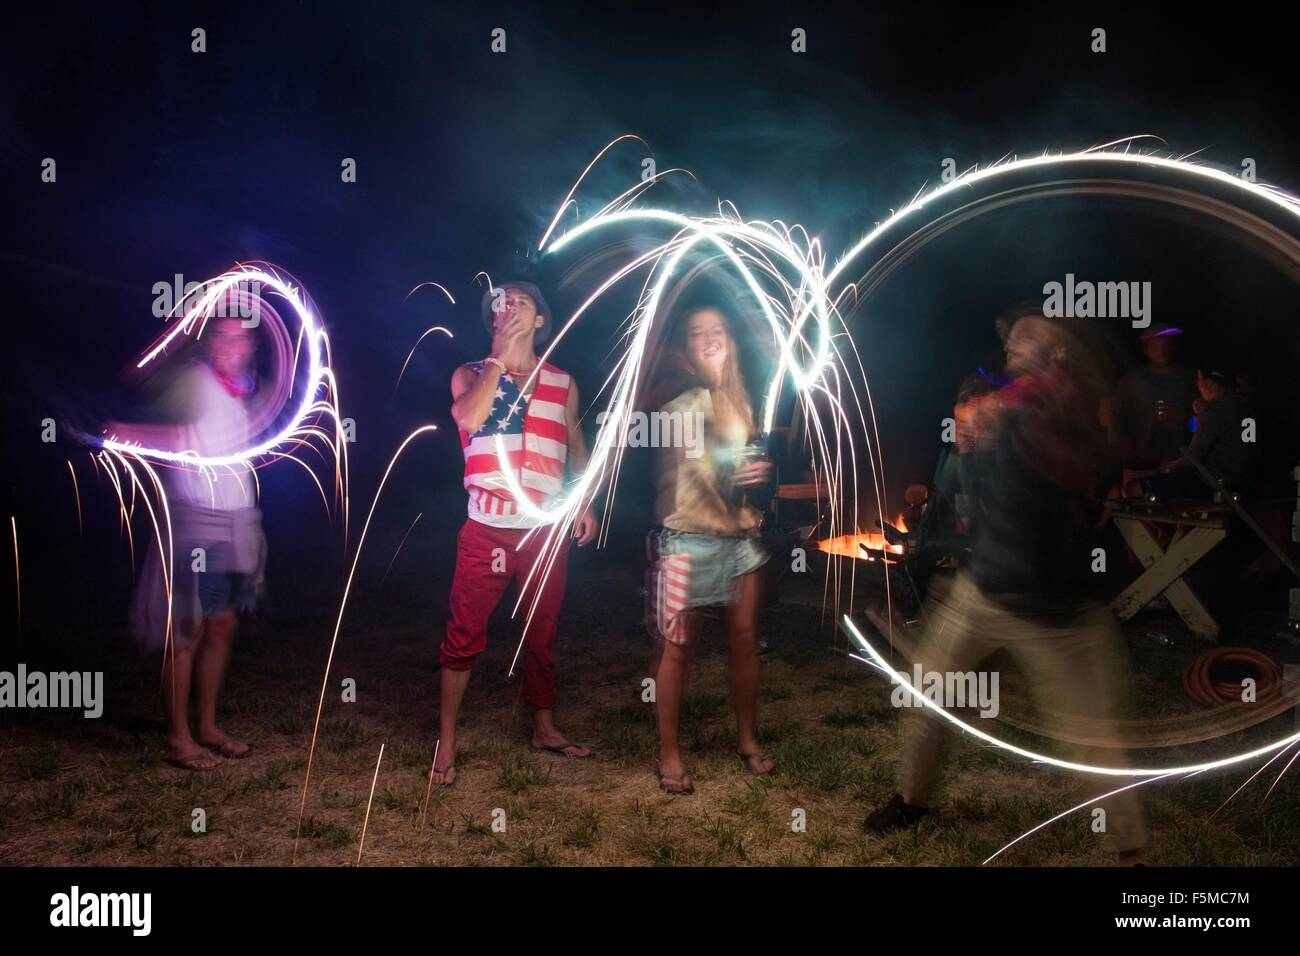 Four adult friends celebrating with sparklers in darkness on Independence Day, USA - Stock Image